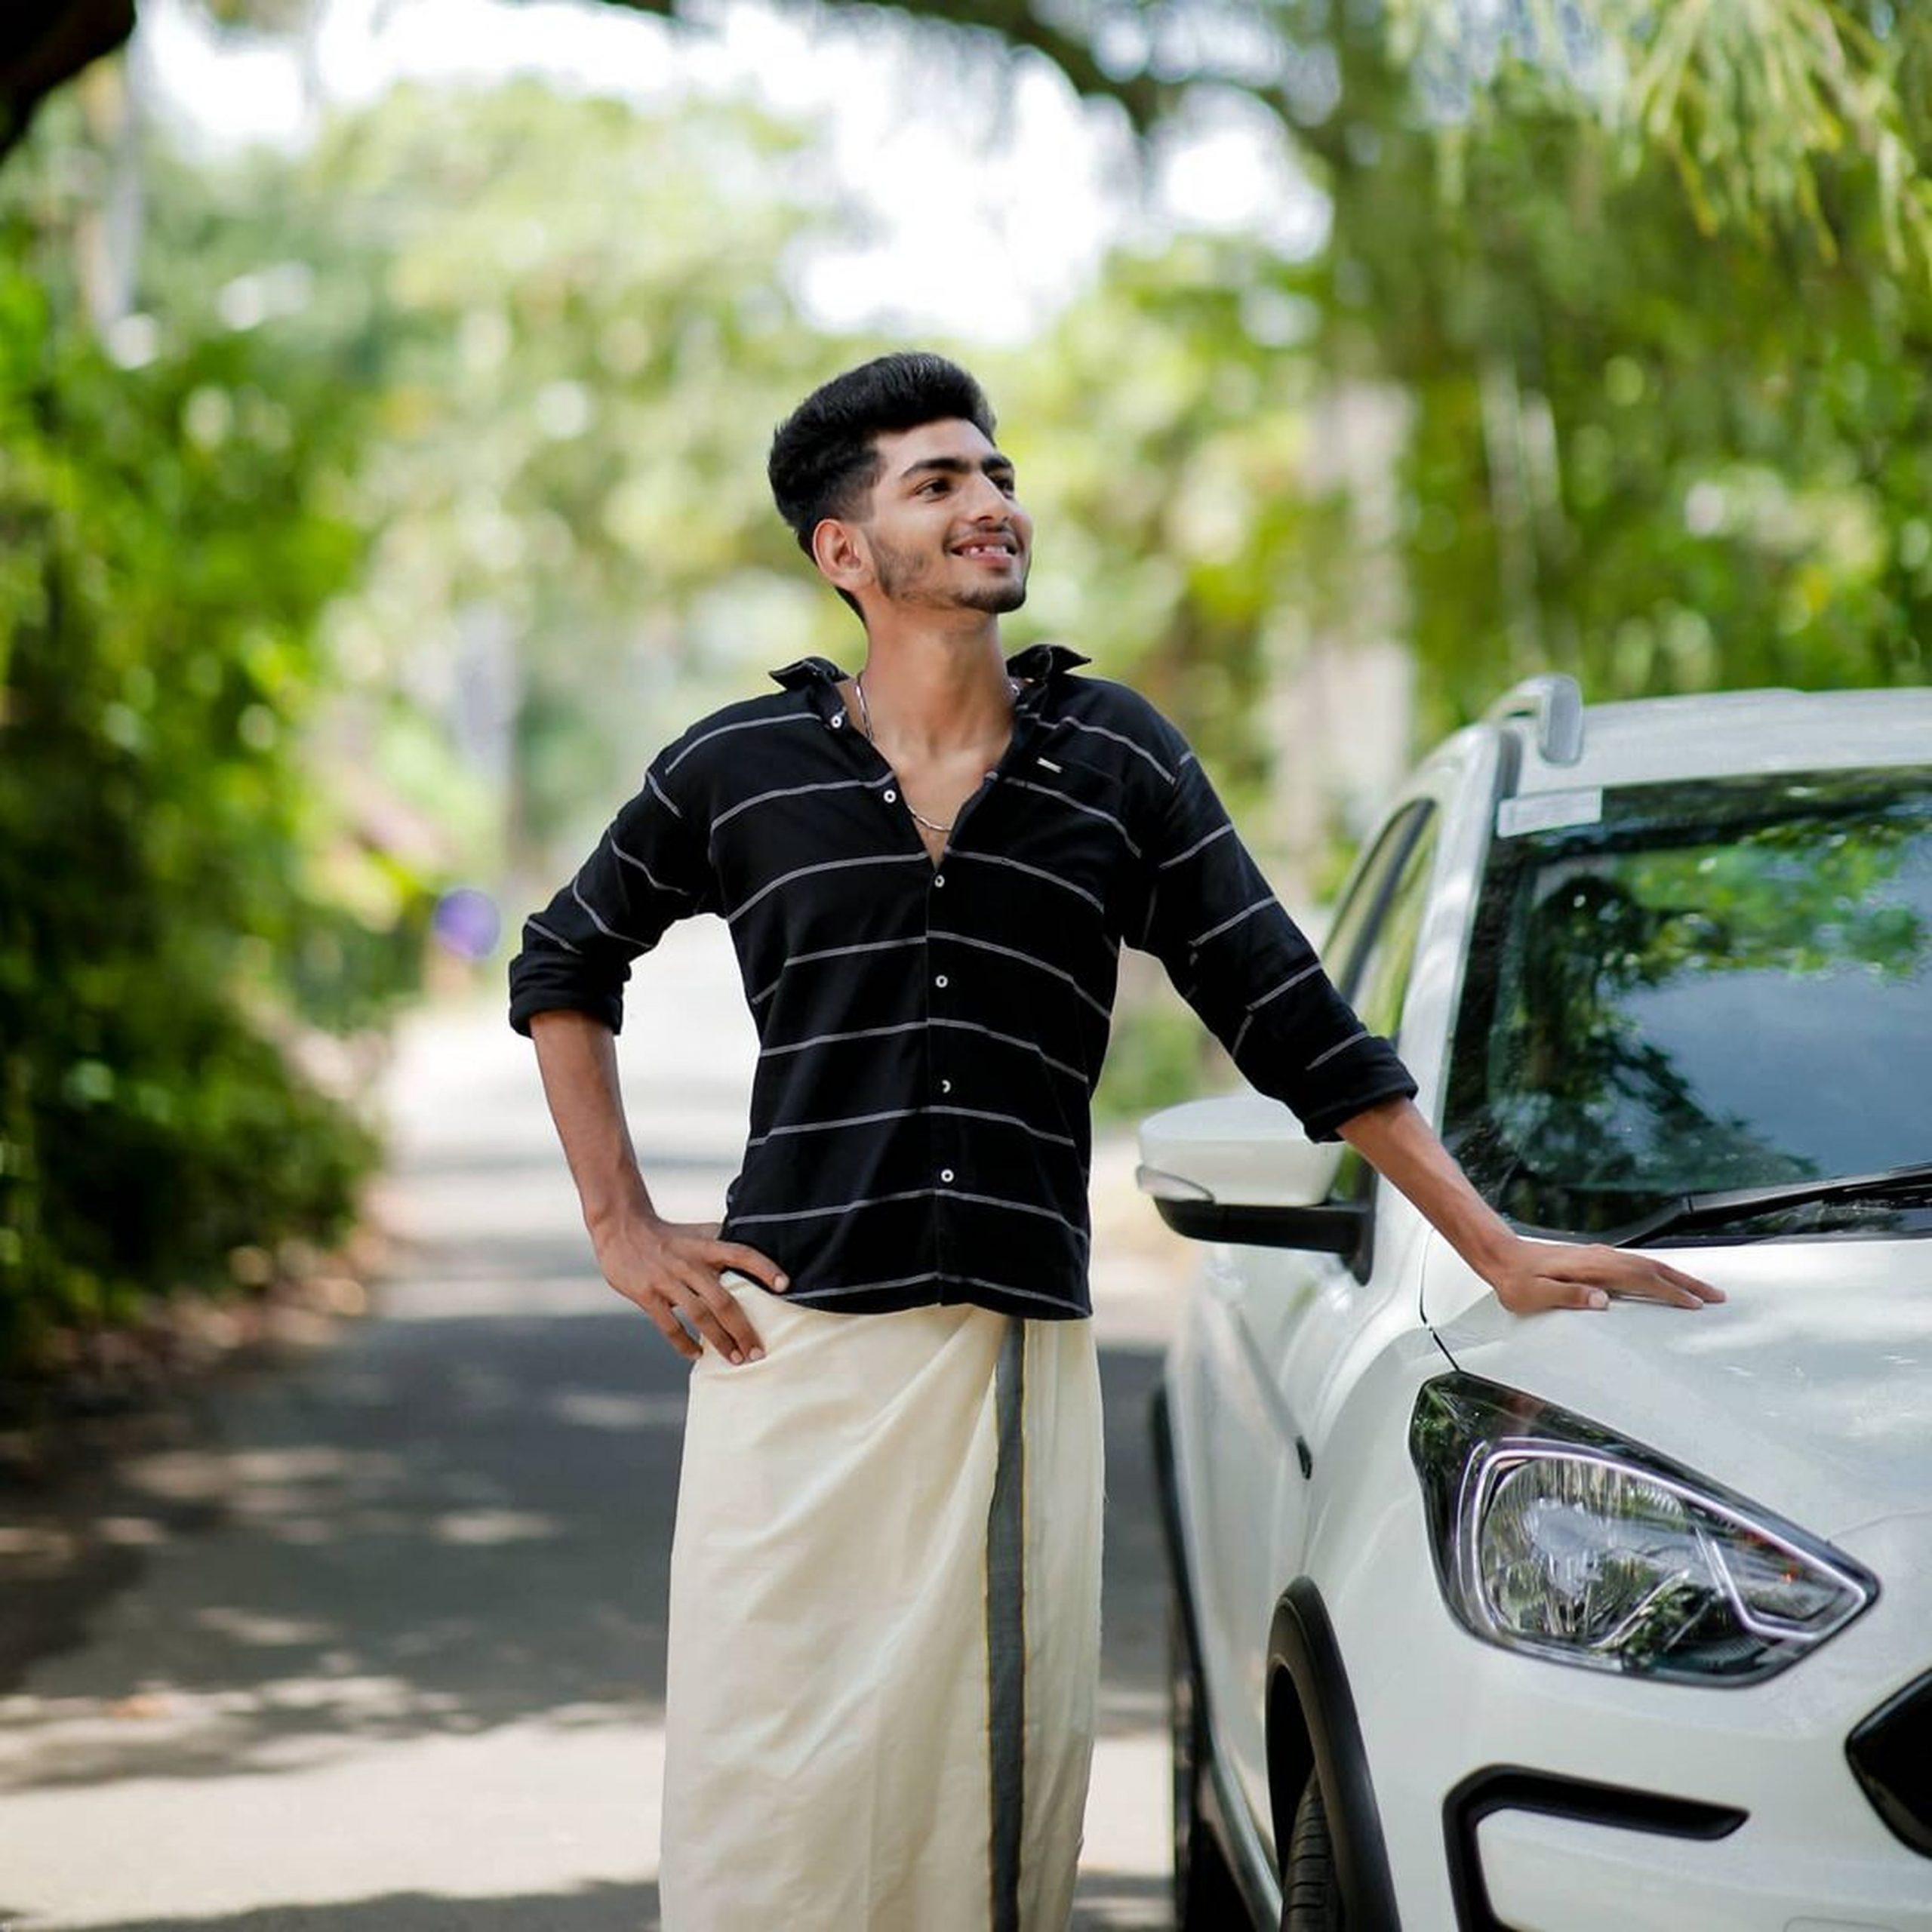 Model wearing lungi and posing near the car